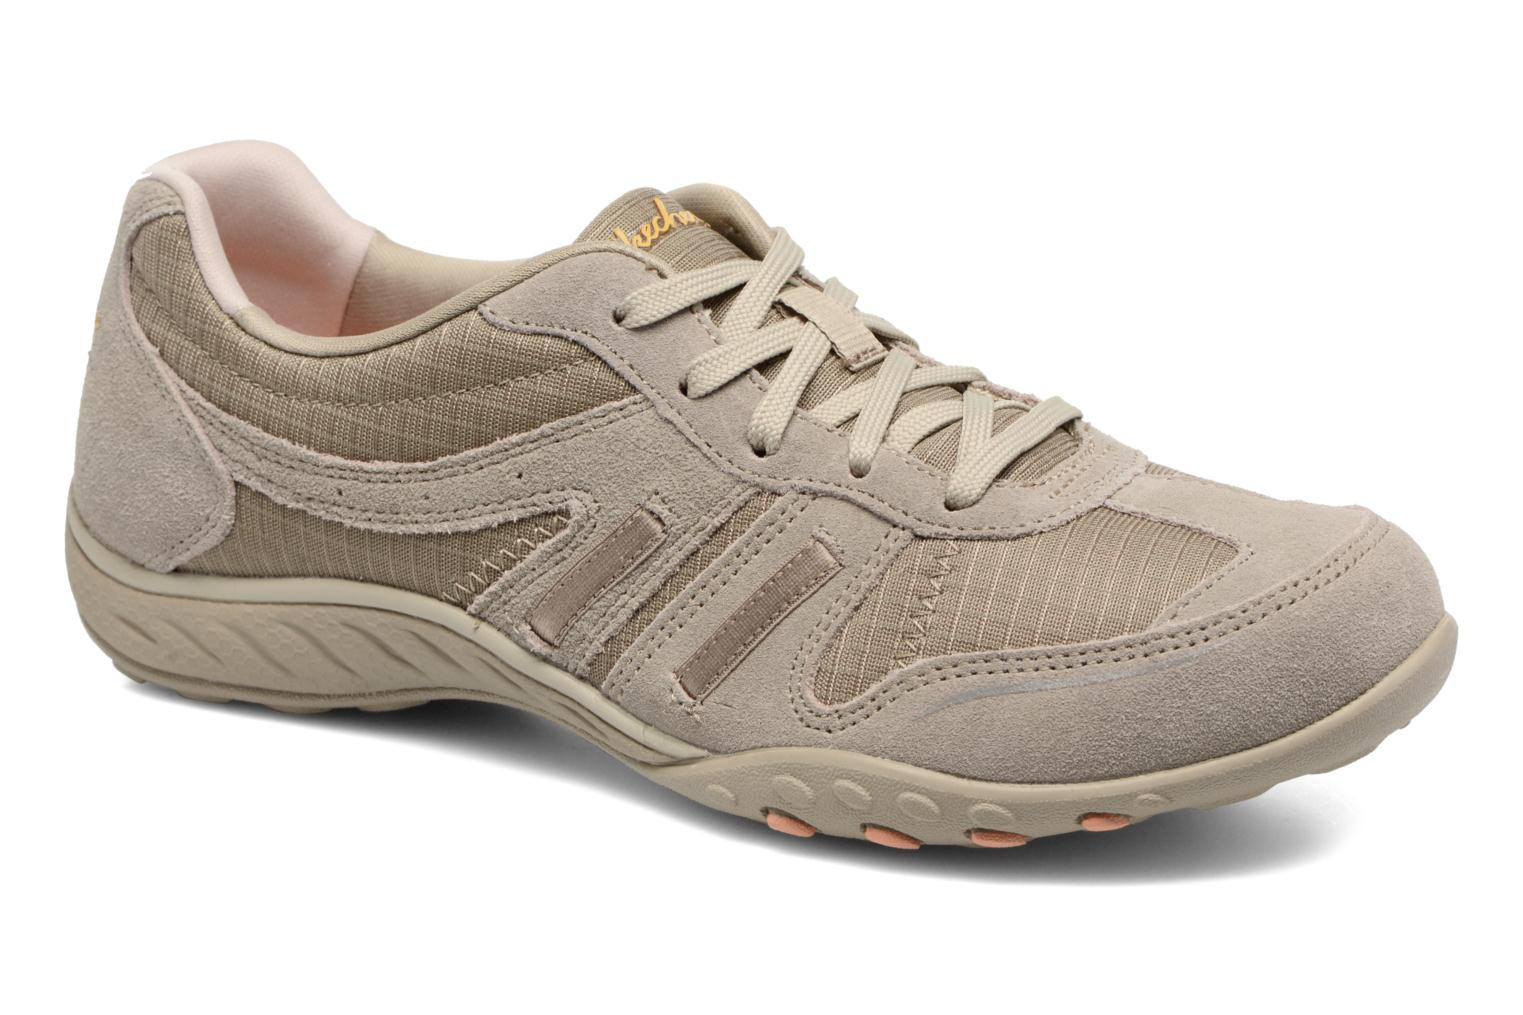 Baskets Skechers Breathe-Easy - Jackpot 22532 Beige vue détail/paire